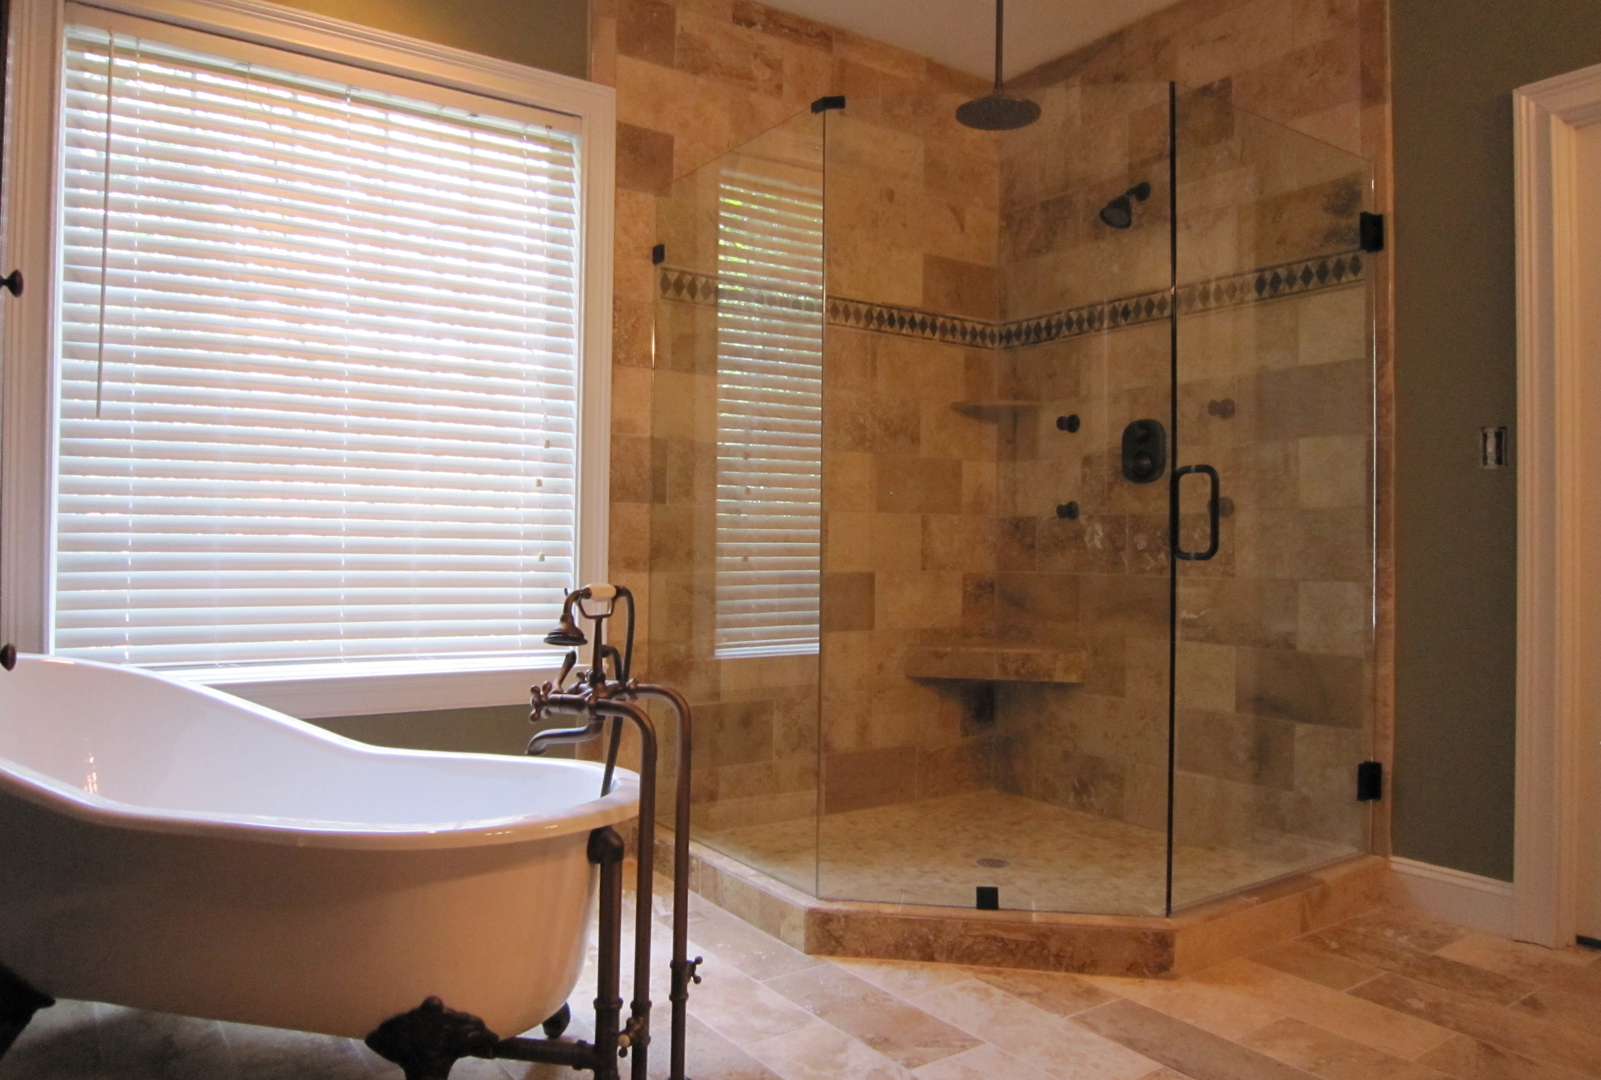 carolina sgo - frameless glass shower doors, frameless shower door